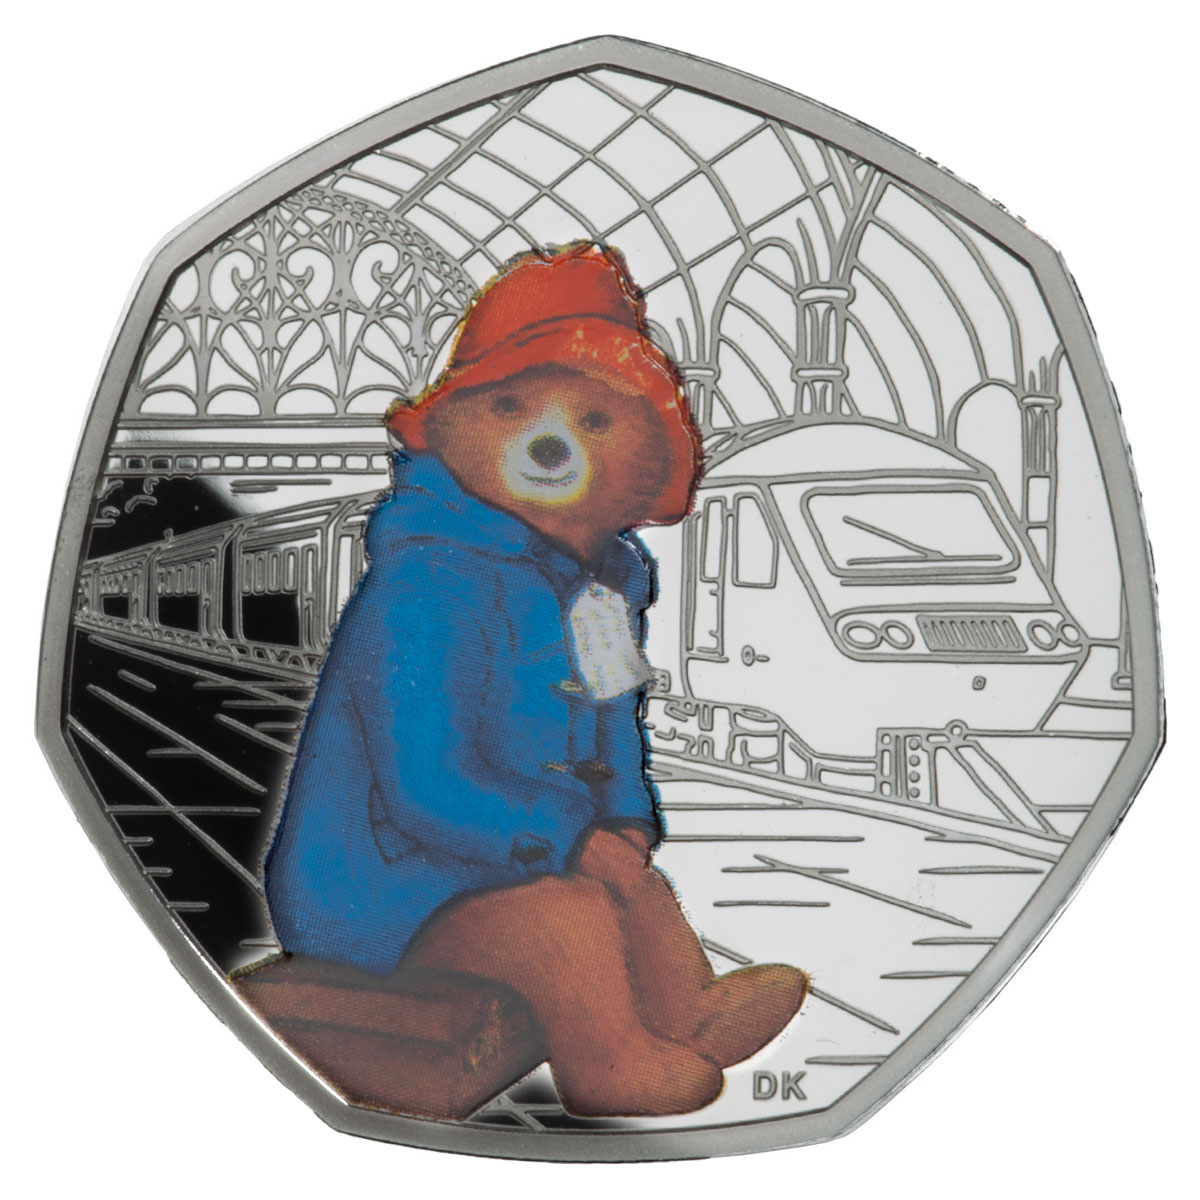 2018 Great Britain Paddington Bear - At Paddington Station 8 g Silver Proof 50p Coin GEM Proof